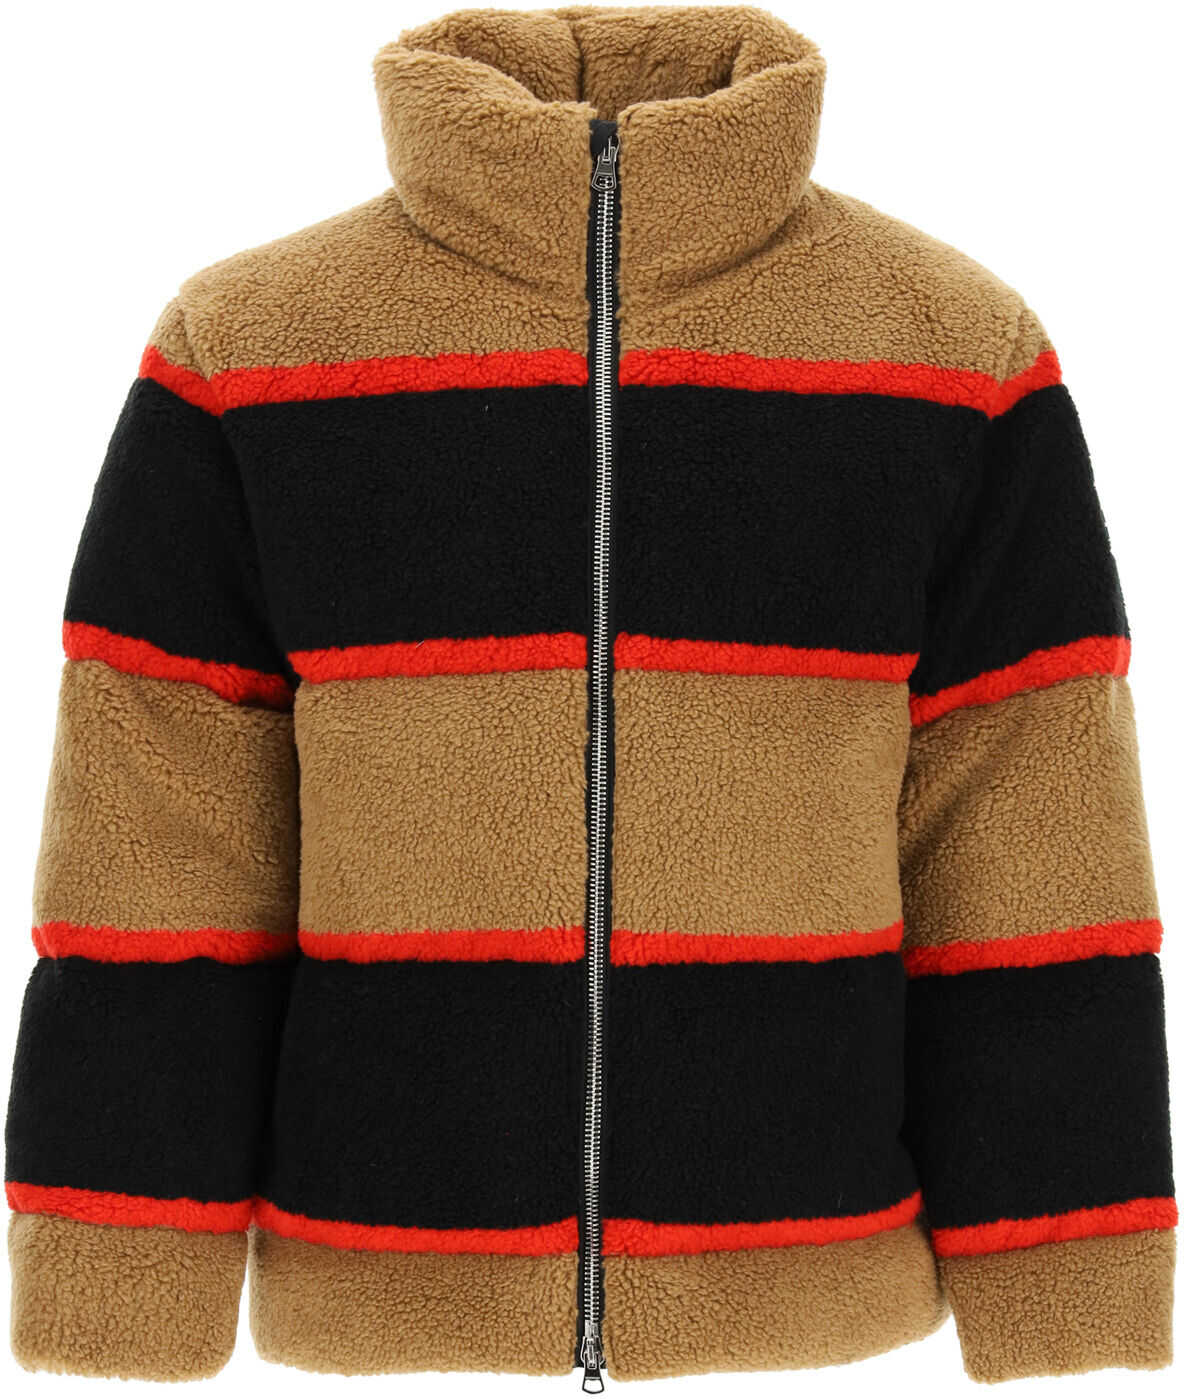 Burberry Color Block Fleece Down Jacket CAMEL imagine